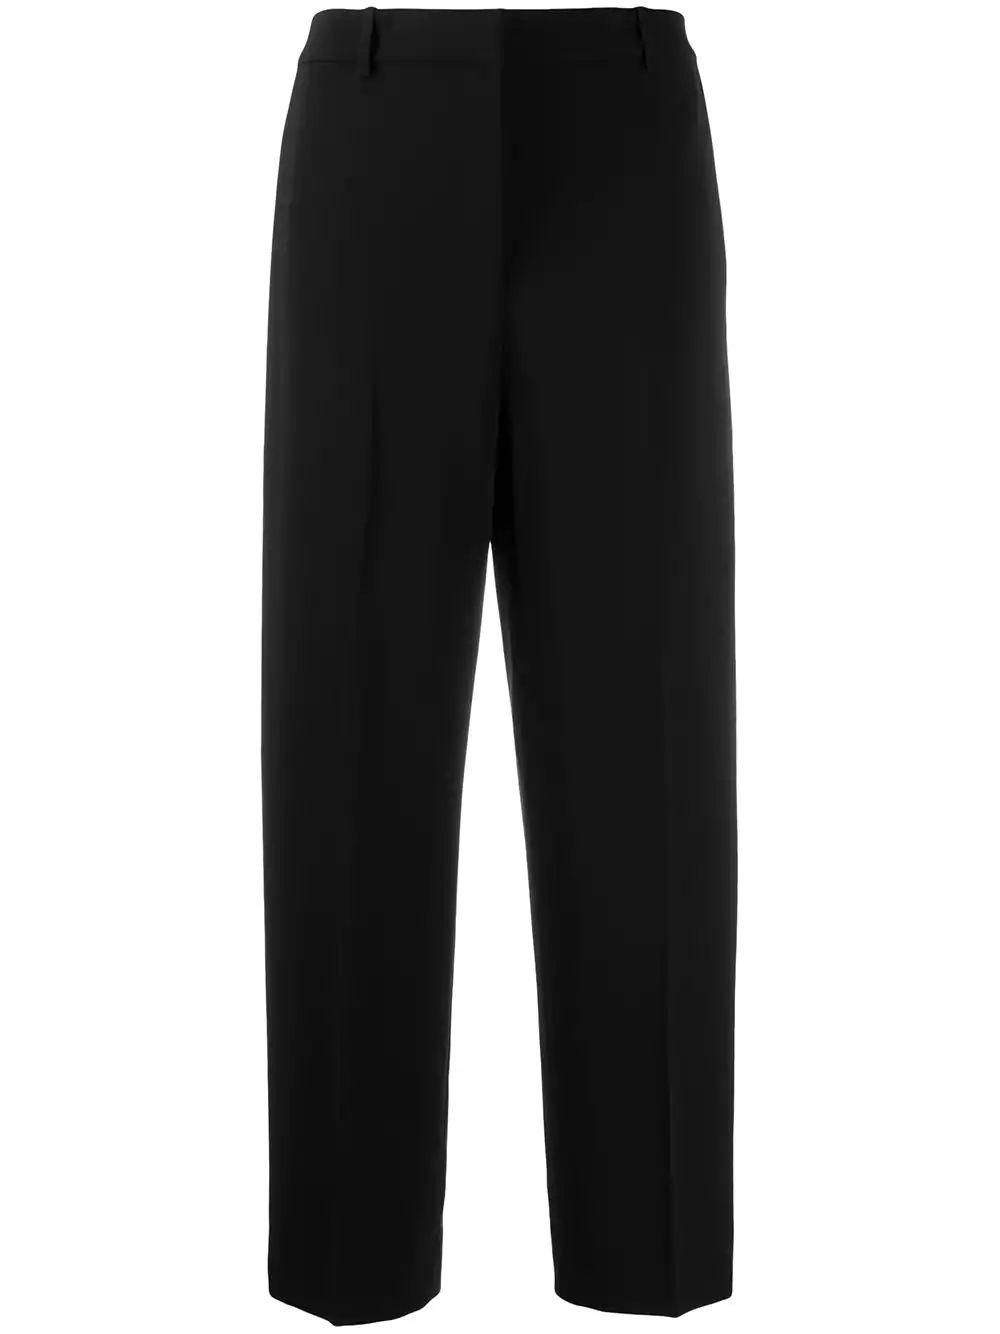 Classic Crepe High Waist Straight Trouser